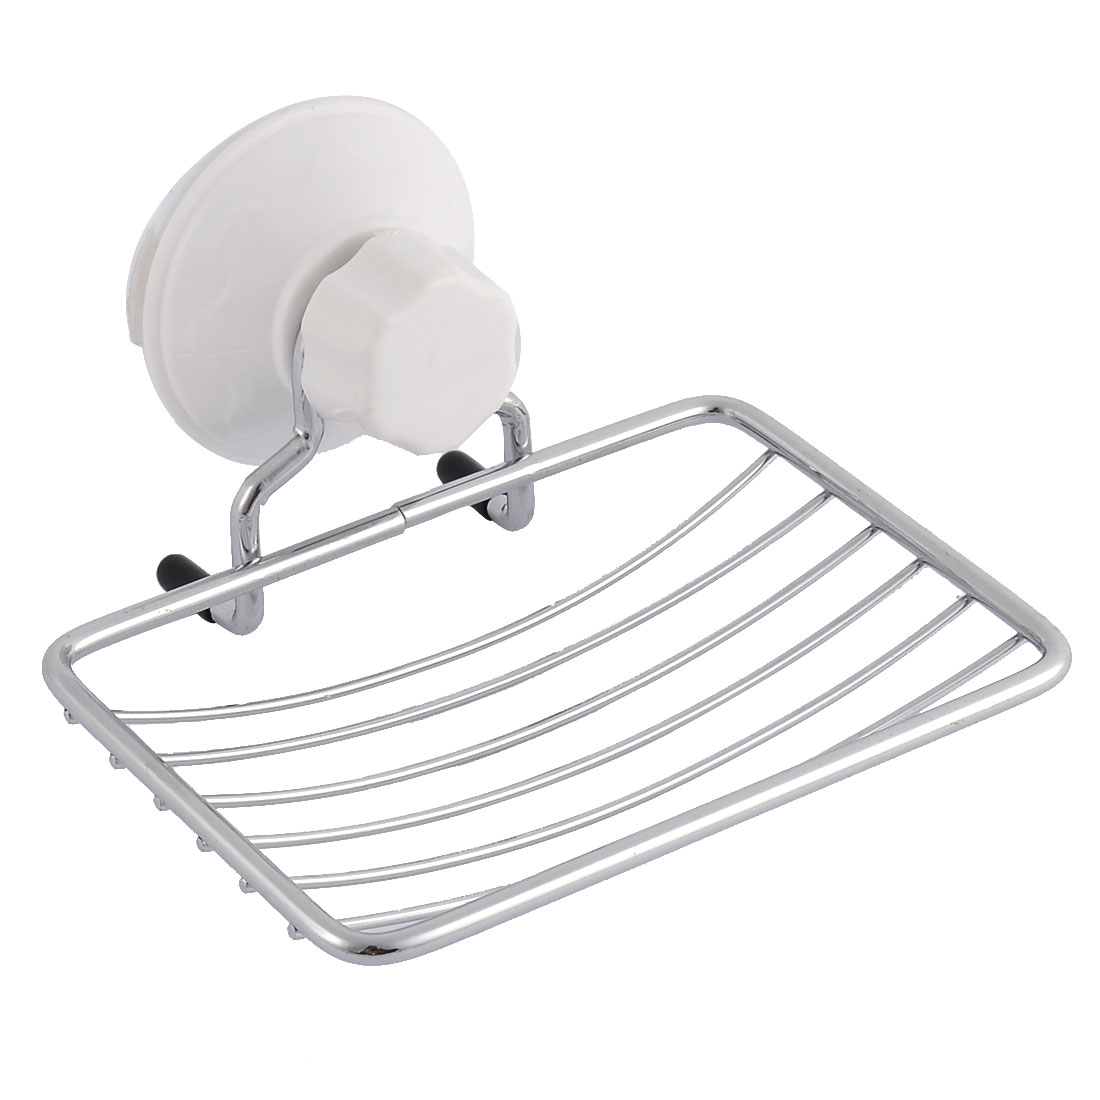 Home Bathroom Metal Wall Mounted Suction Cup Soap Rack Holder Dispenser Silver Tone